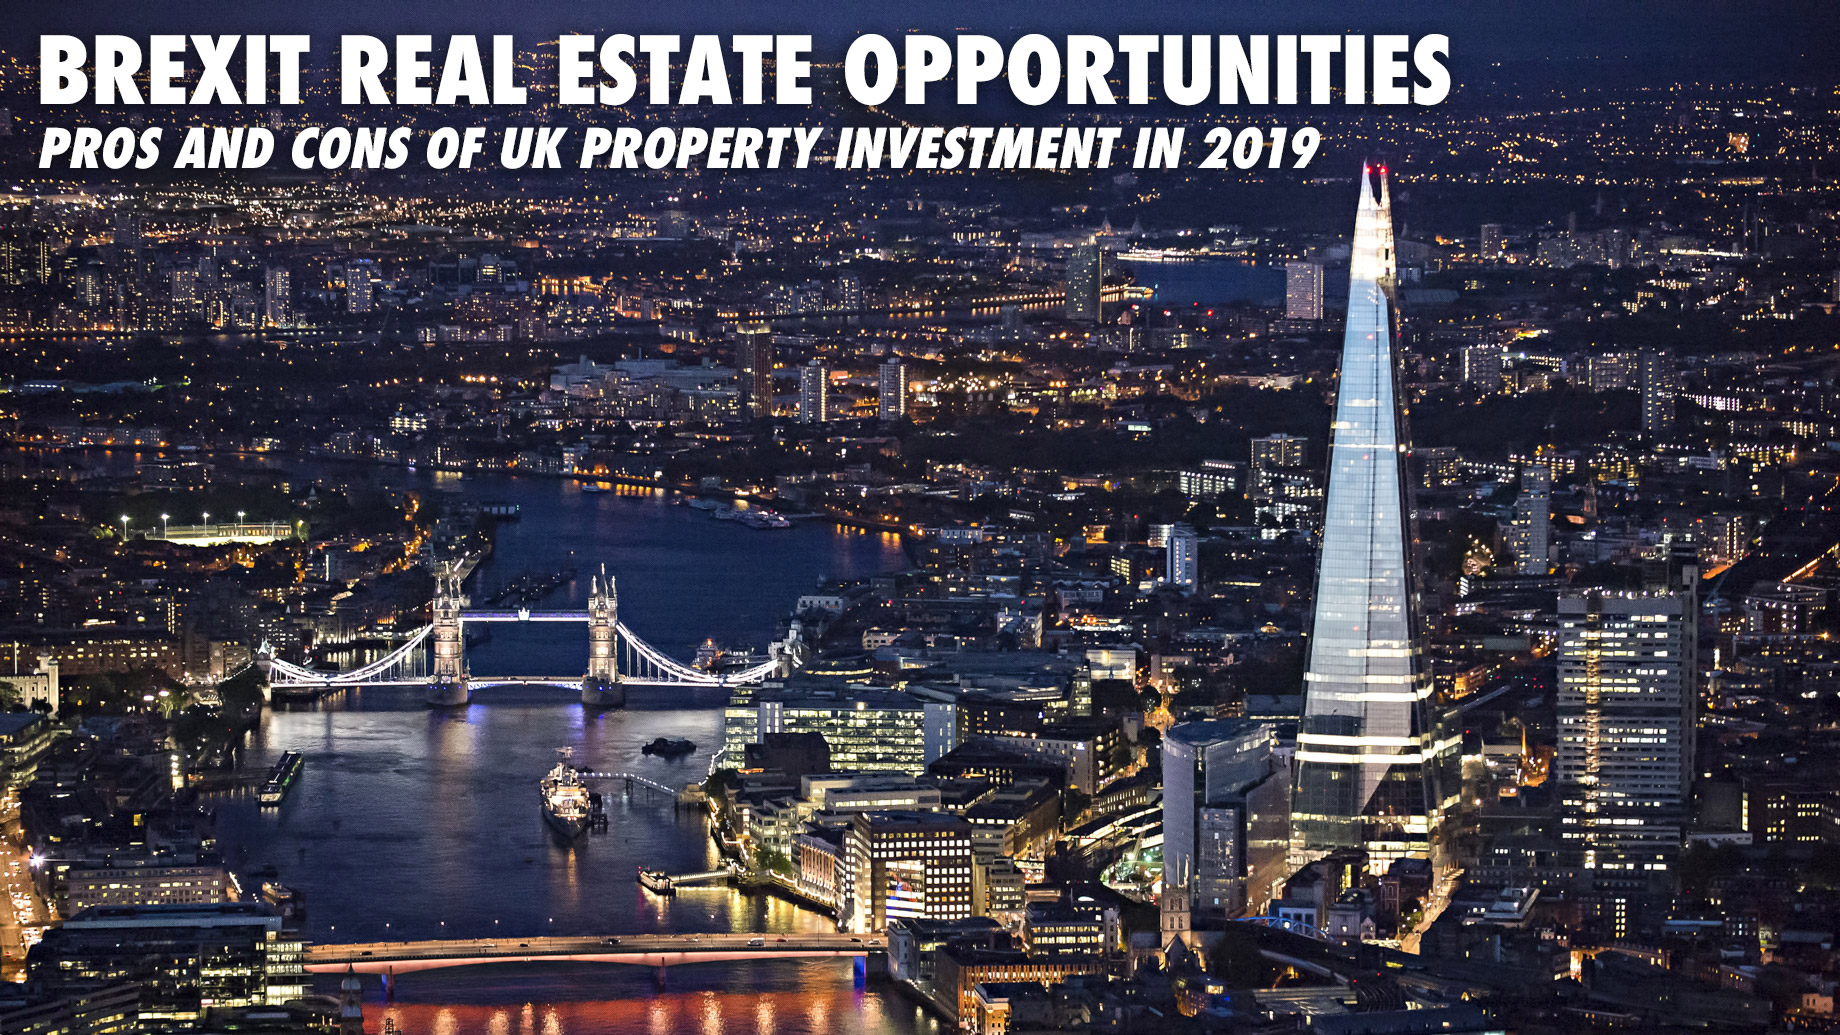 Brexit Real Estate Opportunities - Pros and Cons of UK Property Investment in 2019